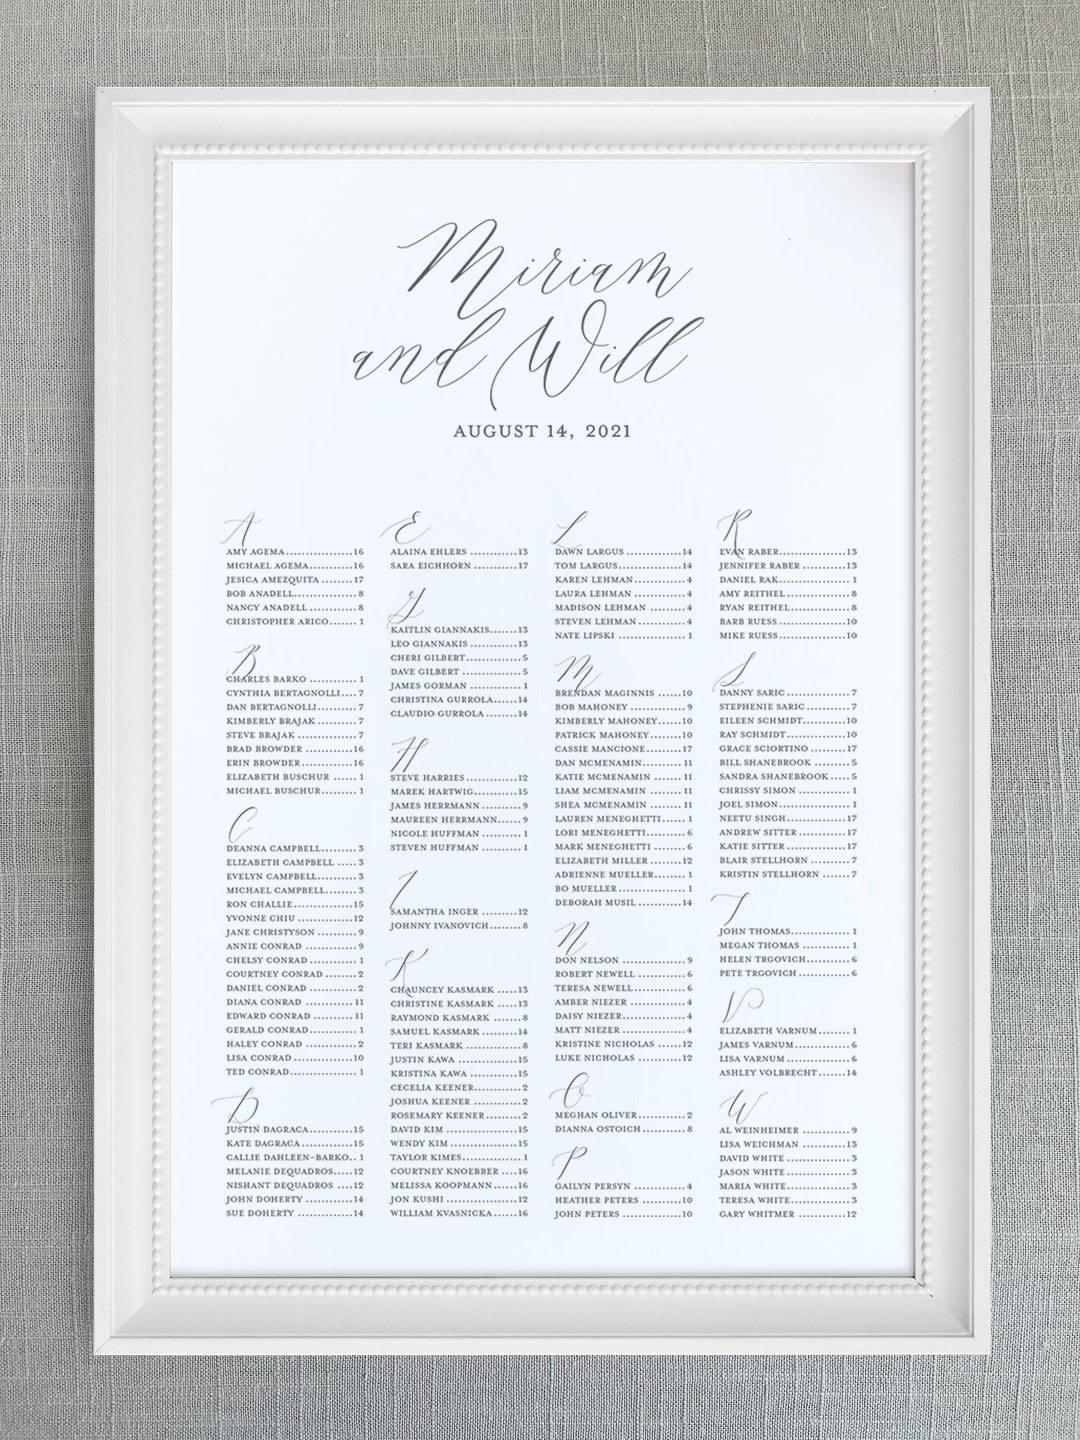 Wedding seating chart with modern calligraphy font organized alphabetically.